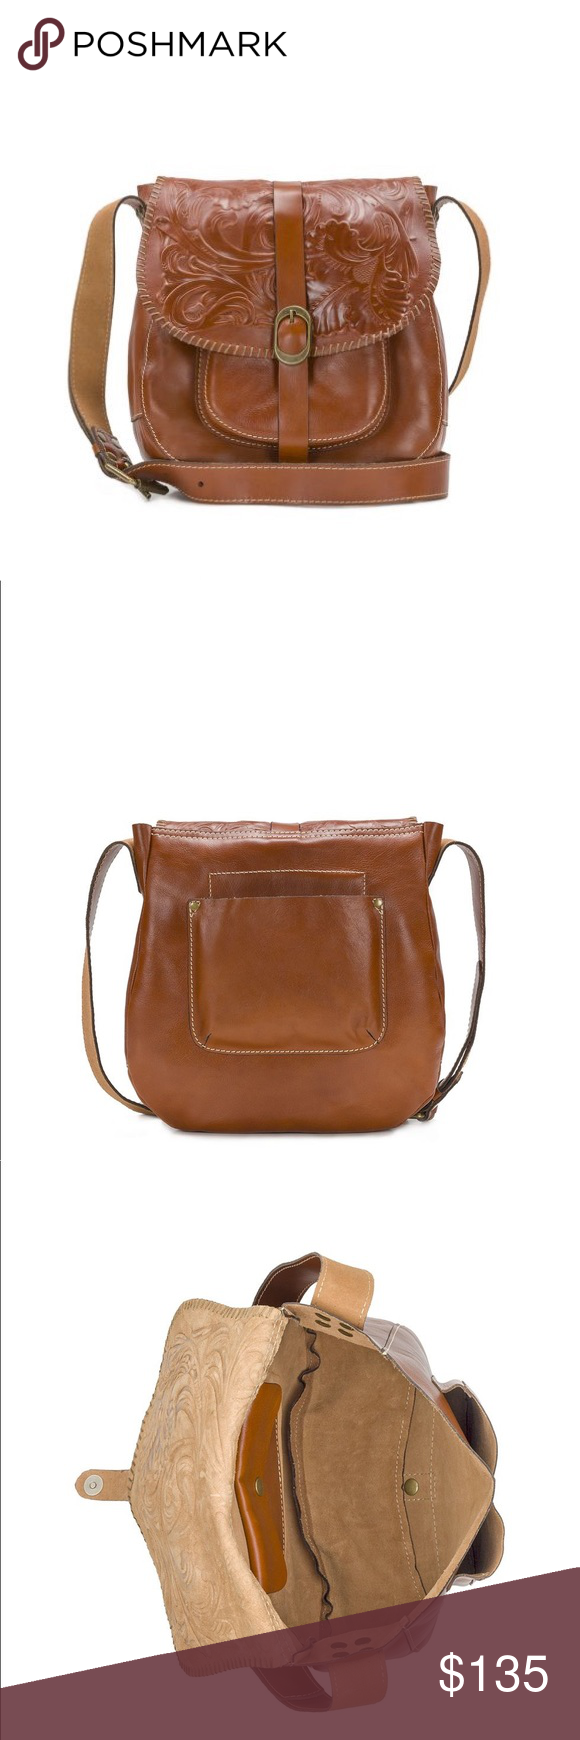 f0db8663cbab FLASH SALE! Patricia Nash Barcellona Bag Patricia Nash Barcellona ...